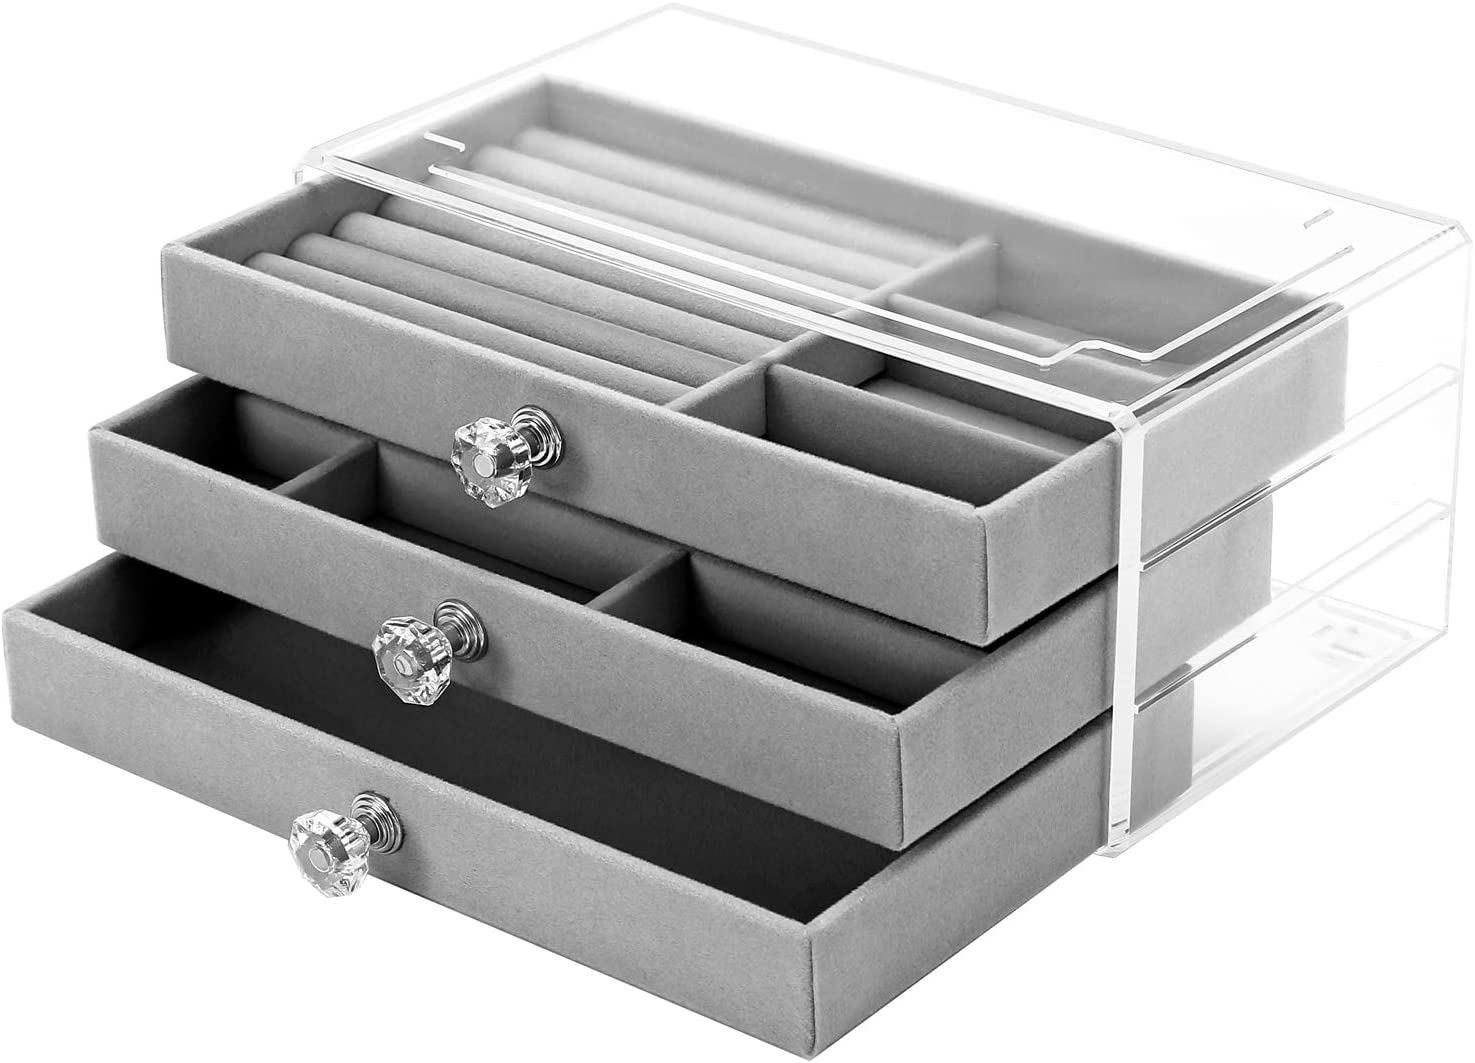 Sooyee 3 Drawers Acrylic Jewelry Box with Crystal Handle,Velvet Jewelry Organizer for Woman,Girls, Clear Jewellery Storage Display Case for Earring, Rings, Necklaces and Bracelets